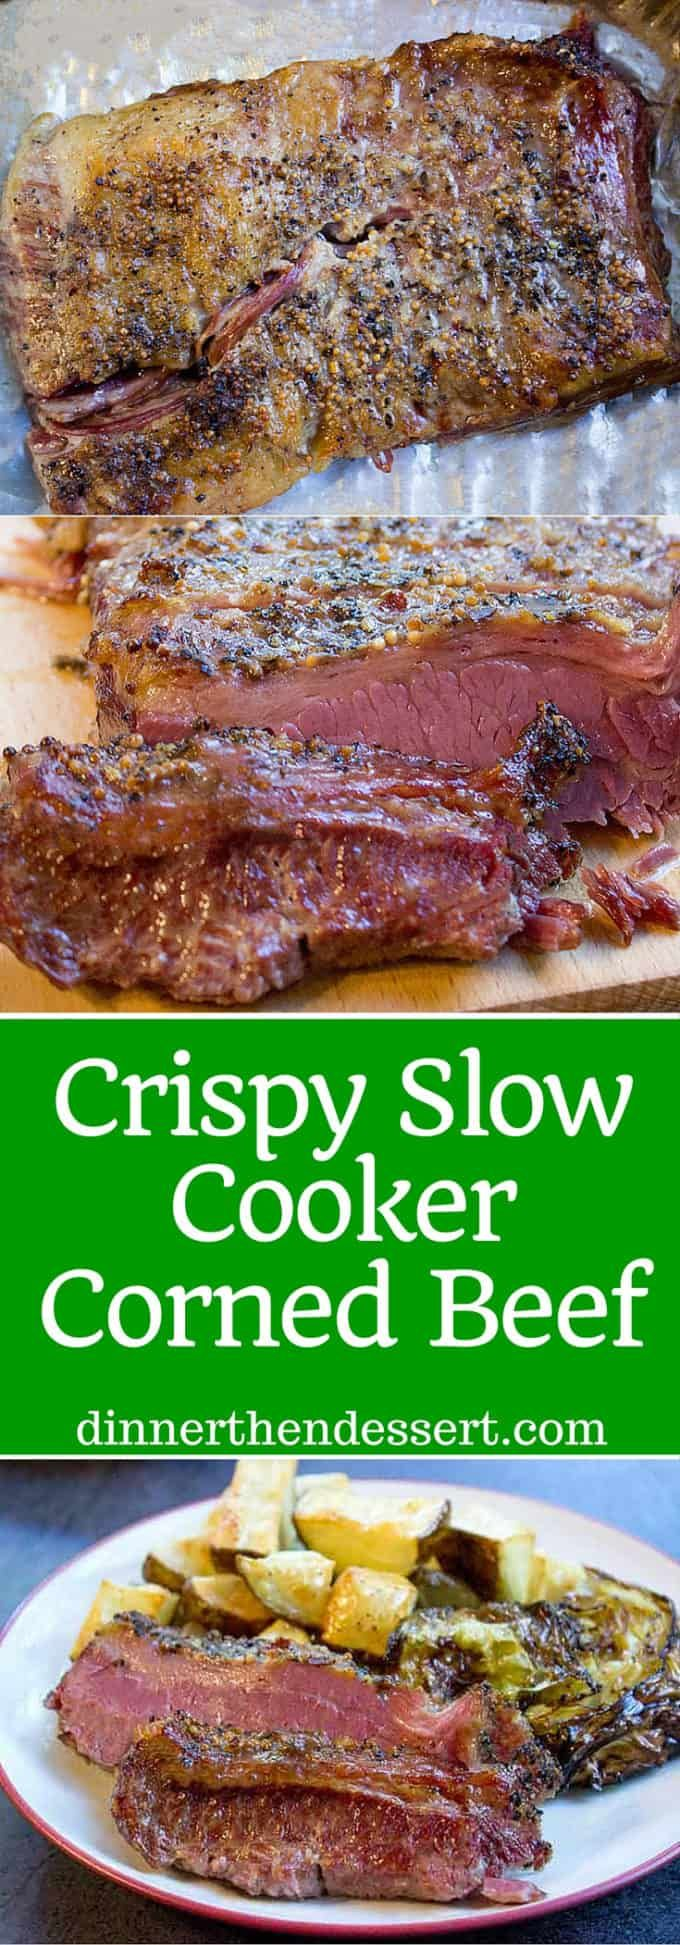 Photo of Crispy Slow Cooker Corned Beef